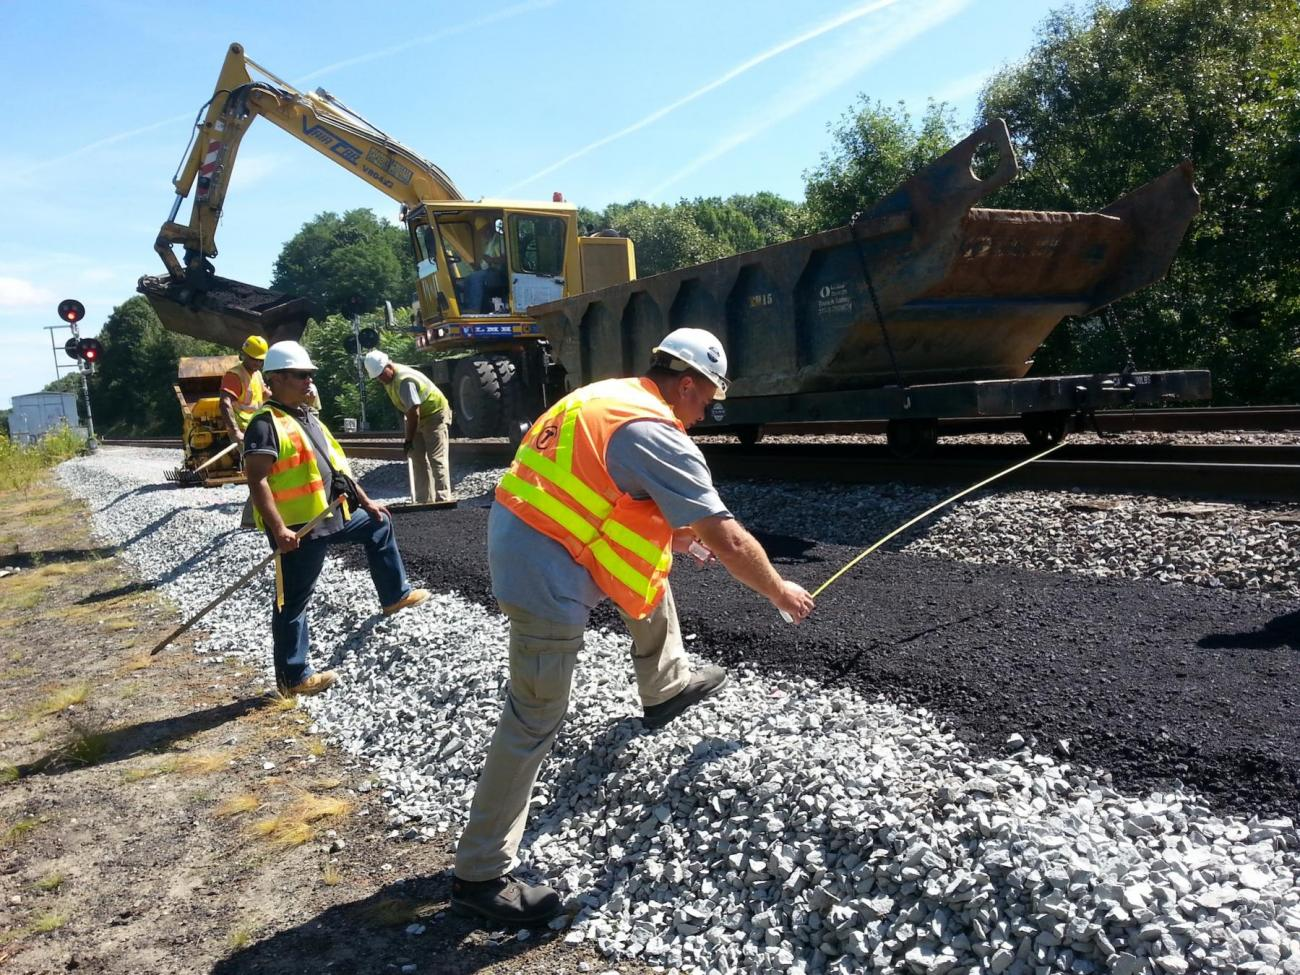 A worker lays asphalt parallel to the tracks, near the Merrimack River Bridge.